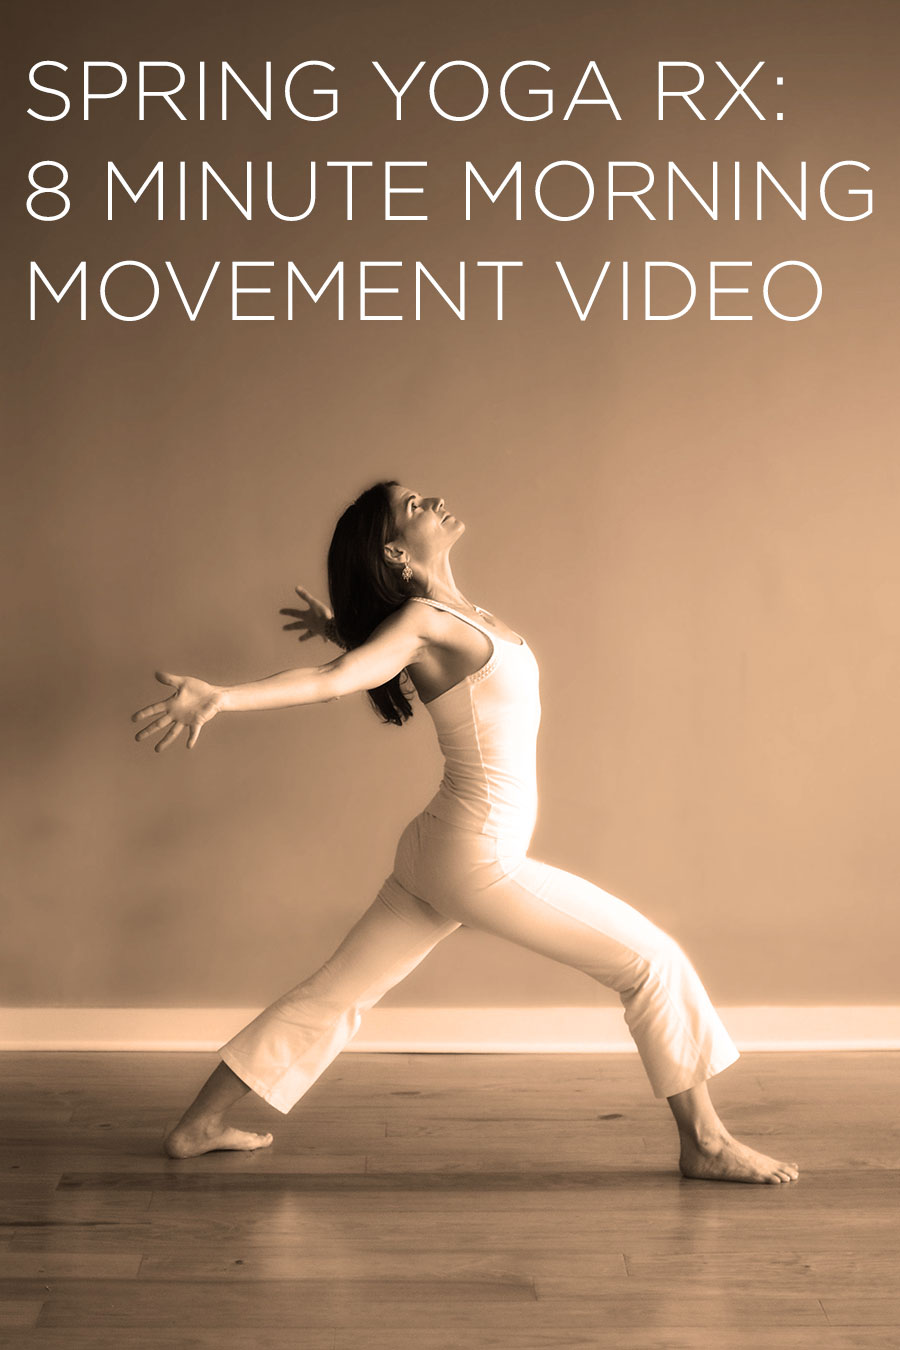 Spring-Yoga-Rx-8-Minute-Morning-Movement-Video.jpg